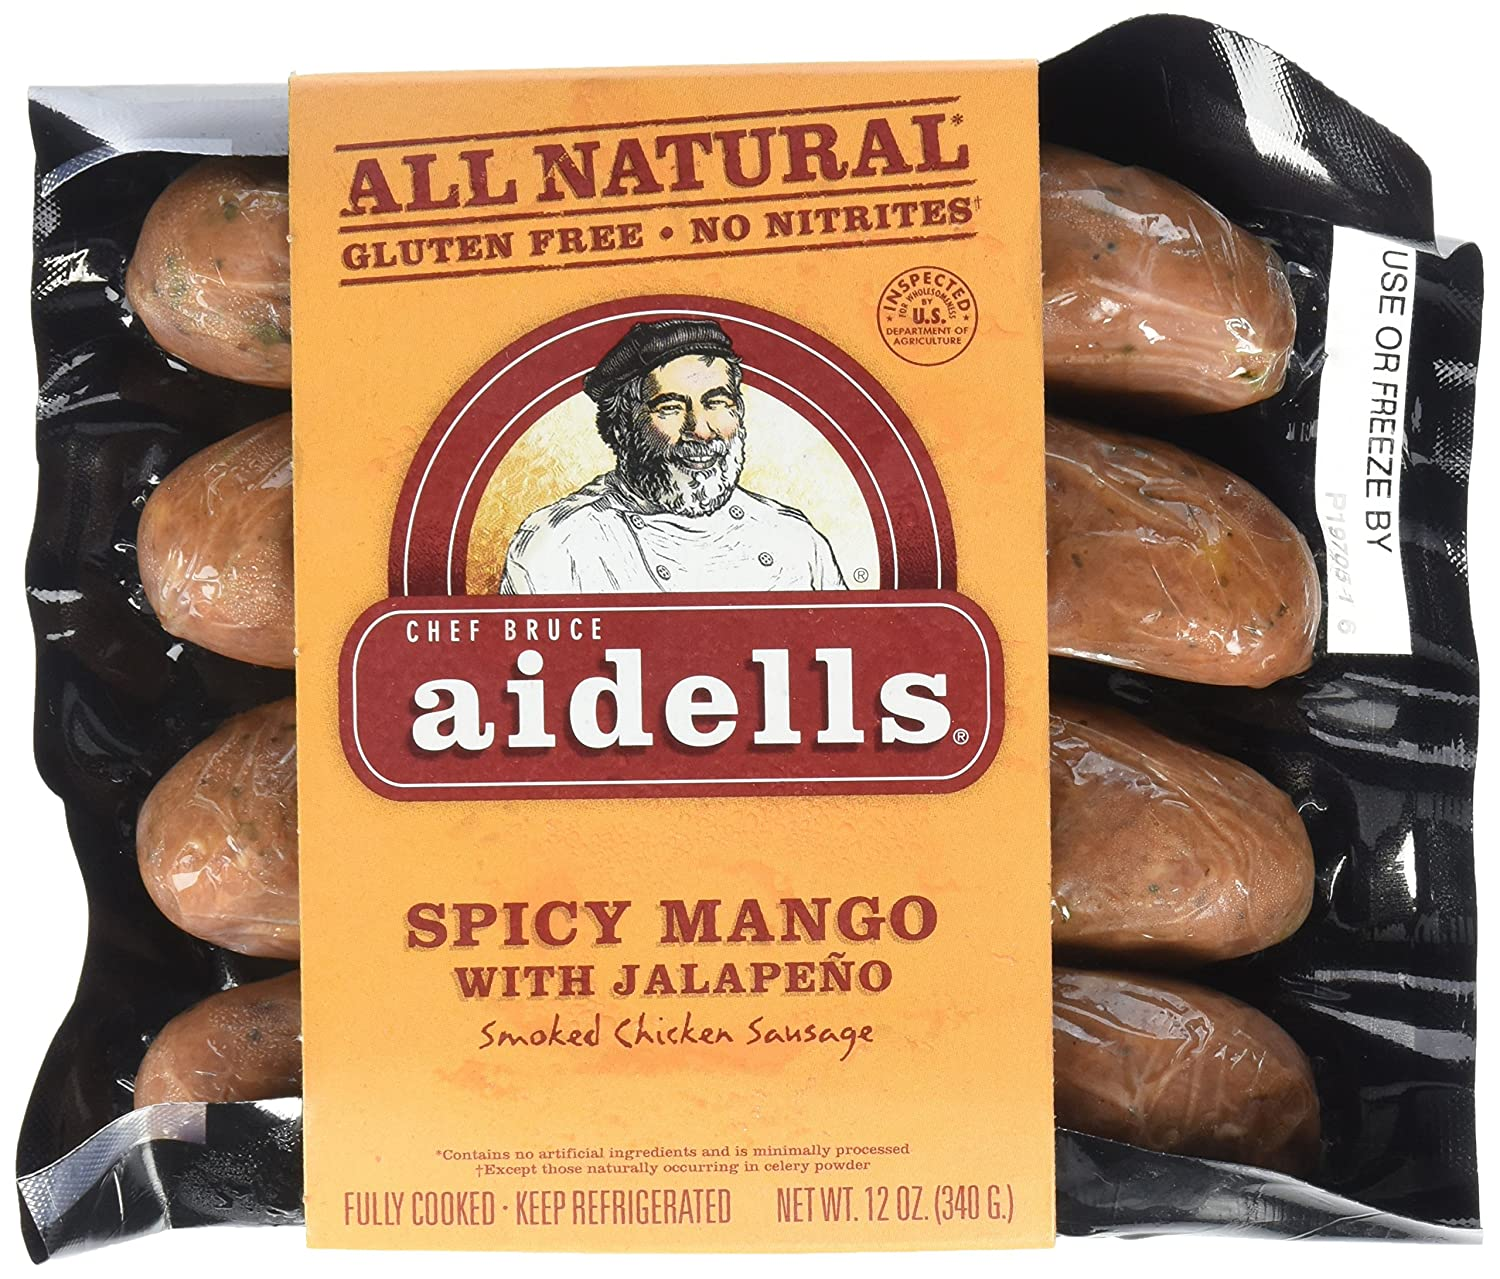 Aidells Smoked Chicken Sausage, Spicy Mango with Jalape?o, 12 oz. (4 Fully Cooked Links): Amazon.com: Grocery & Gourmet Food